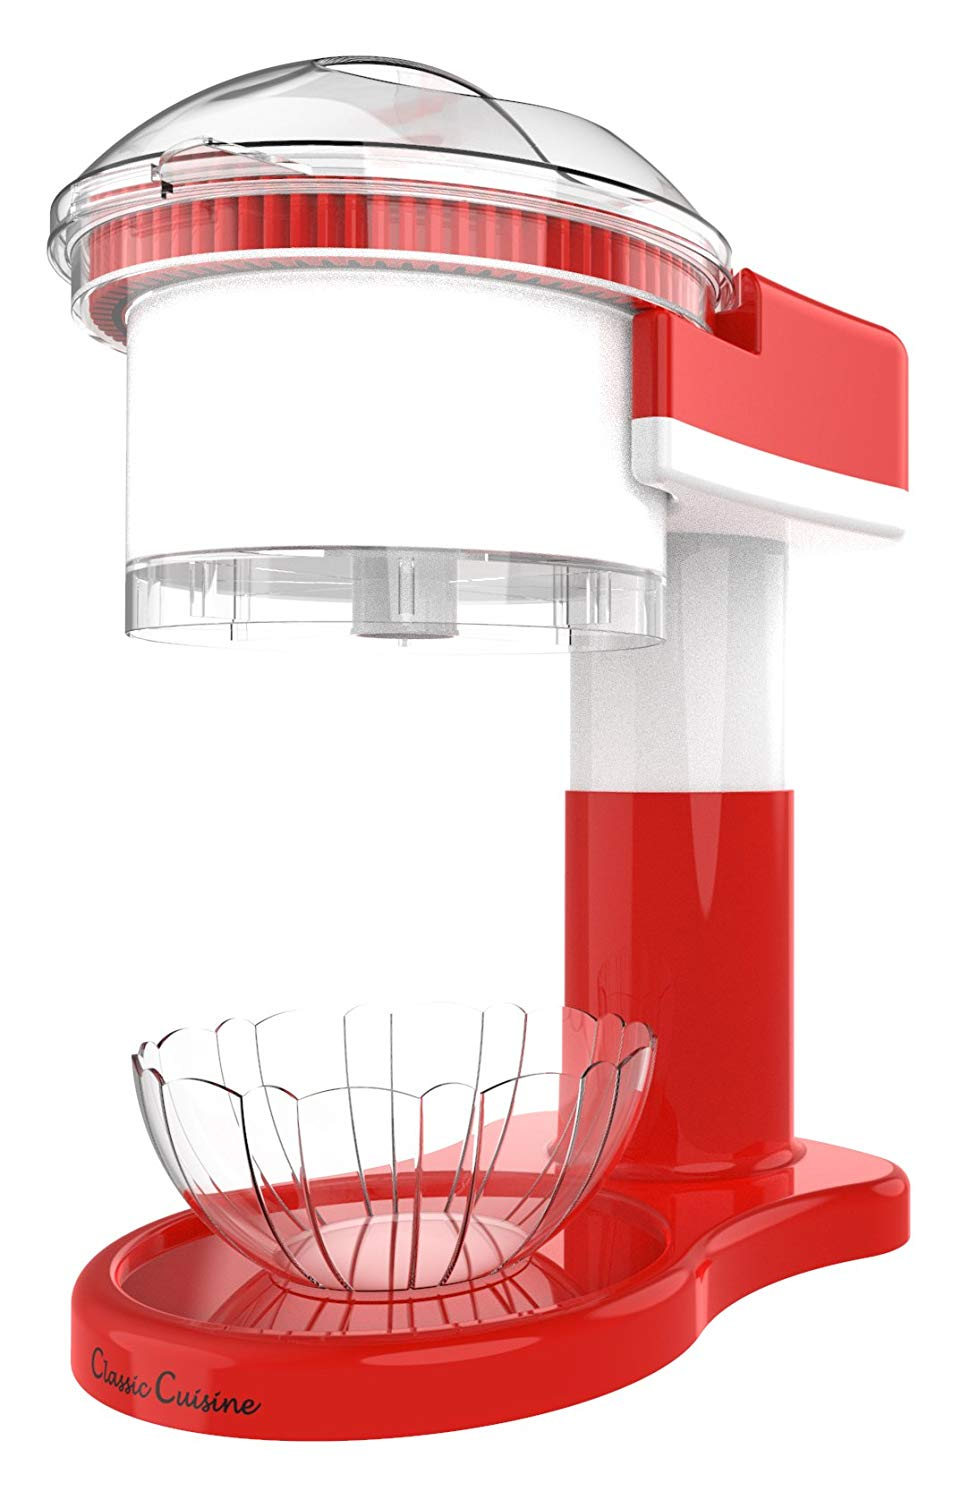 Classic Cuisine Brand Shaved Ice Maker